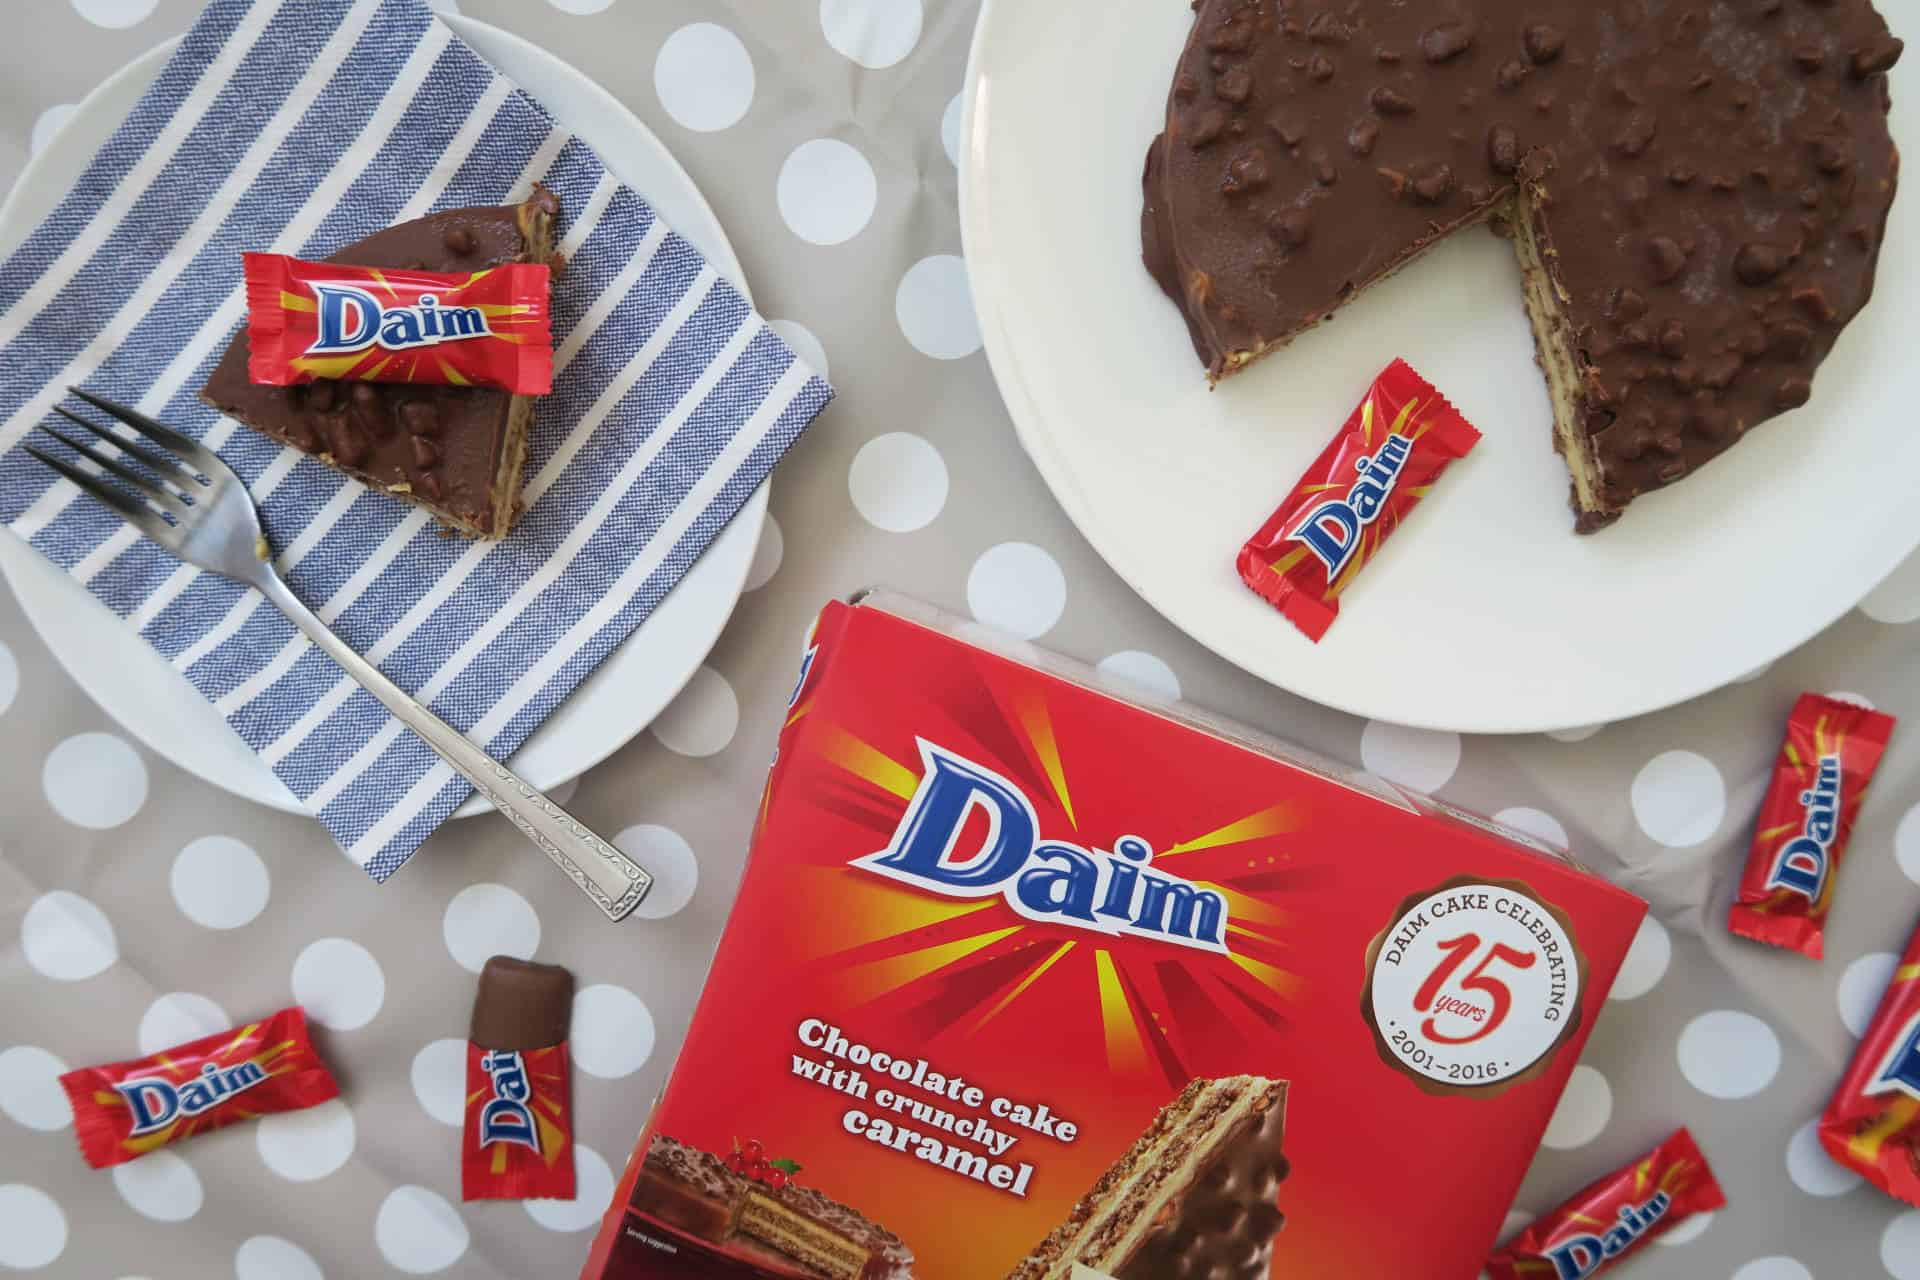 almondy-gluten-free-daim-chocolate-cake-4